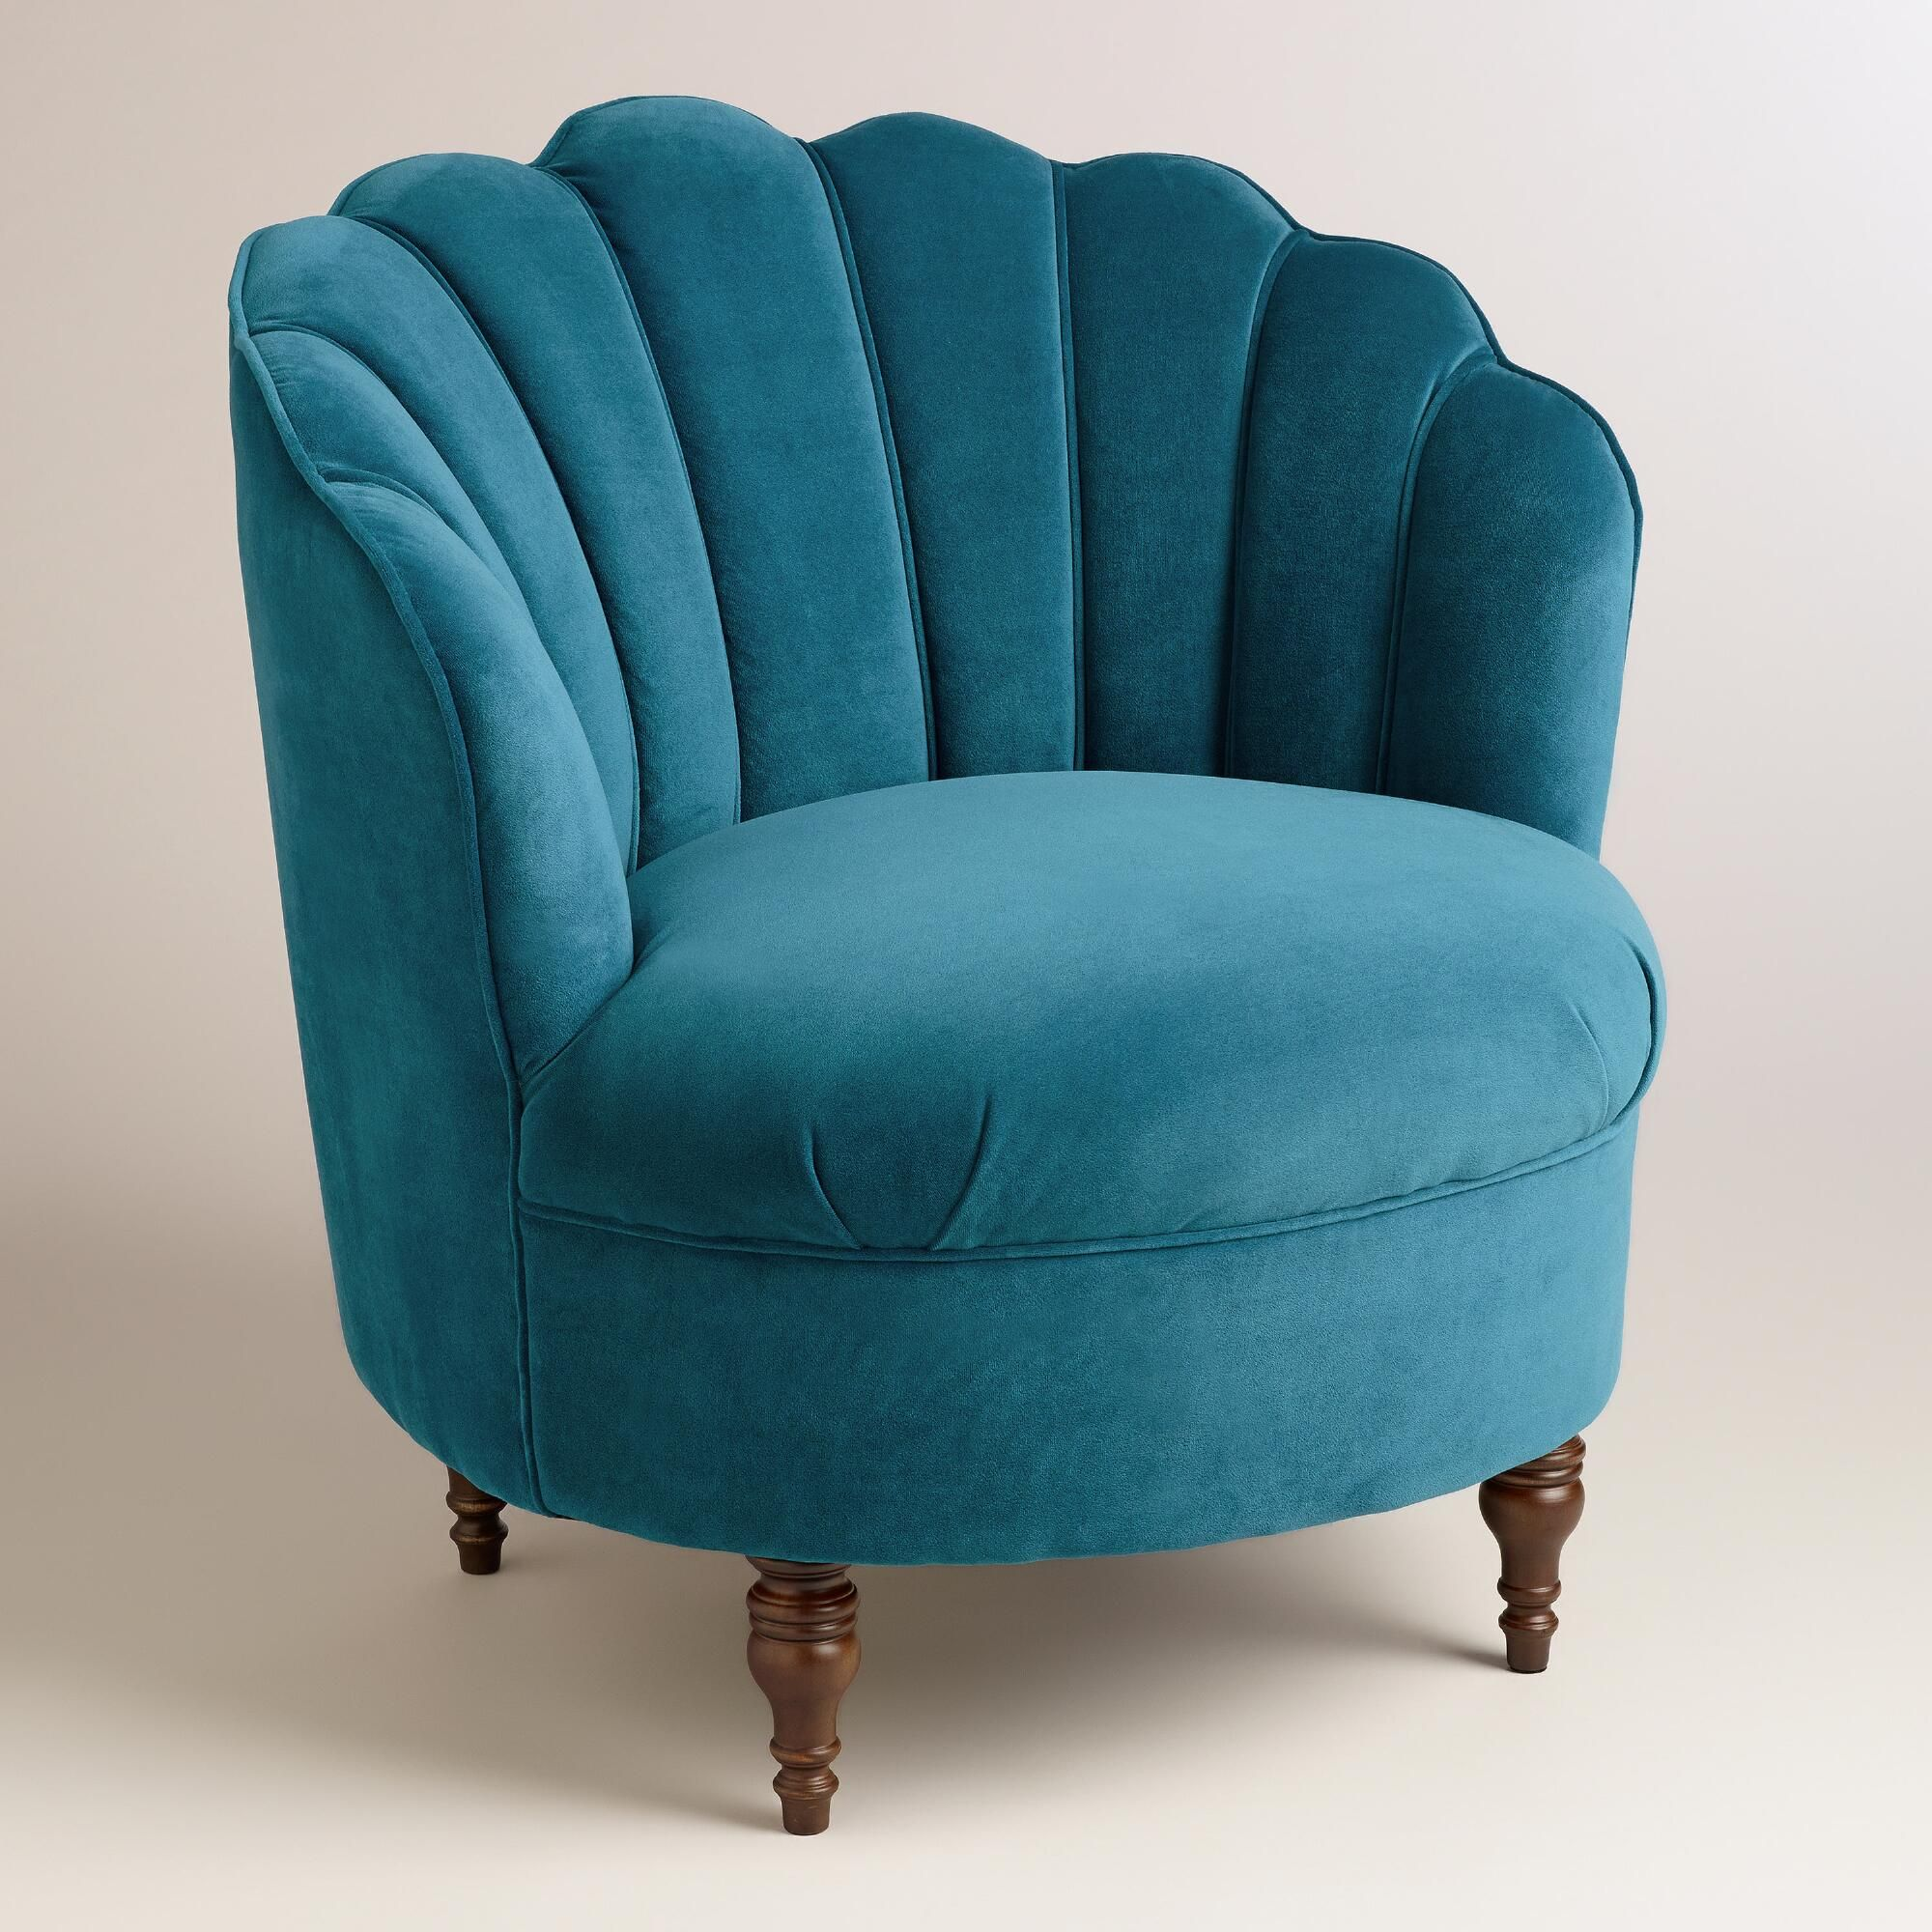 Turquoise Accent Chairs Monarch Specialties Chair Peacock Blue Velvet Telulah World Market For The